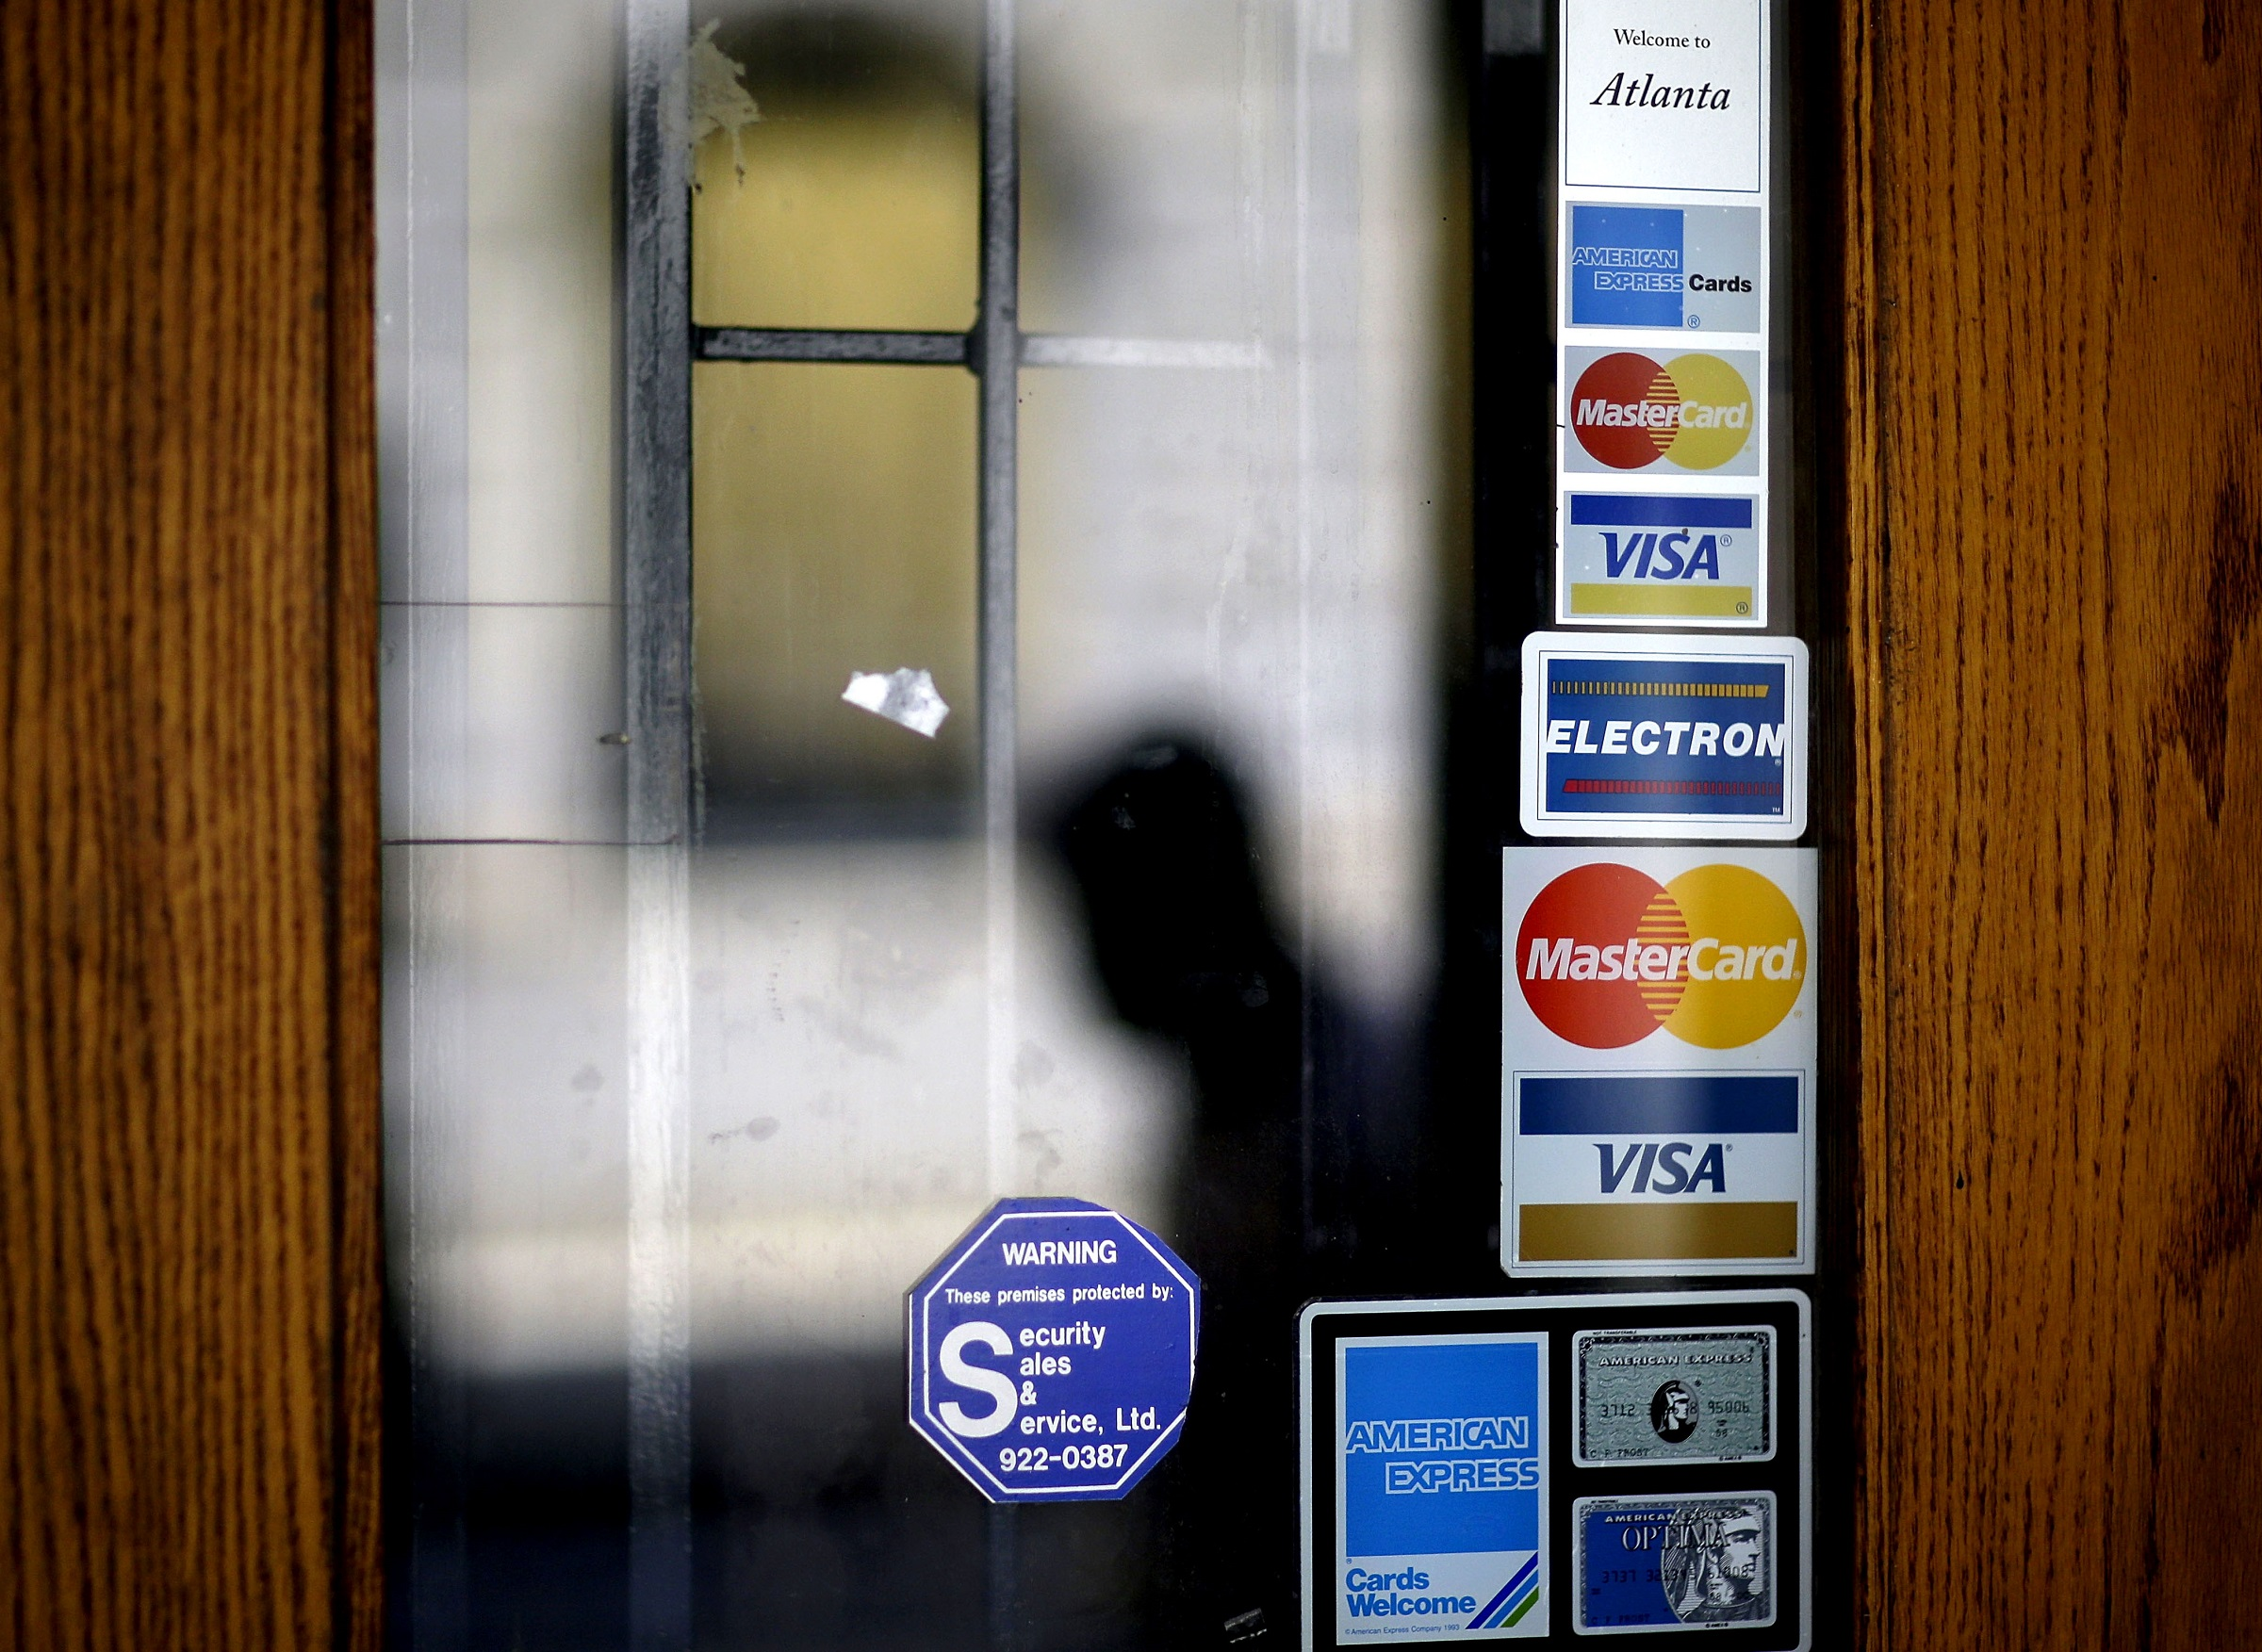 FILE - In this July 18, 2012 file photo, credit card logos are seen on a downtown storefront as a pedestrian passes in Atlanta. Household debt surged at an unprecedented rate in the five years before the financial crisis. In the U.S., the U.K. and France, it soared more than 50 percent per adult. For the world's top 10 economies, it jumped 34 percent. Then the financial crisis hit, and people slammed the brakes on borrowing. Debt per adult in the 10 countries fell 1 percent in the 4½ years after 2007. Economists say debt hasn't fallen in sync like that since the end of World War II.  (AP Photo/David Goldman, File)